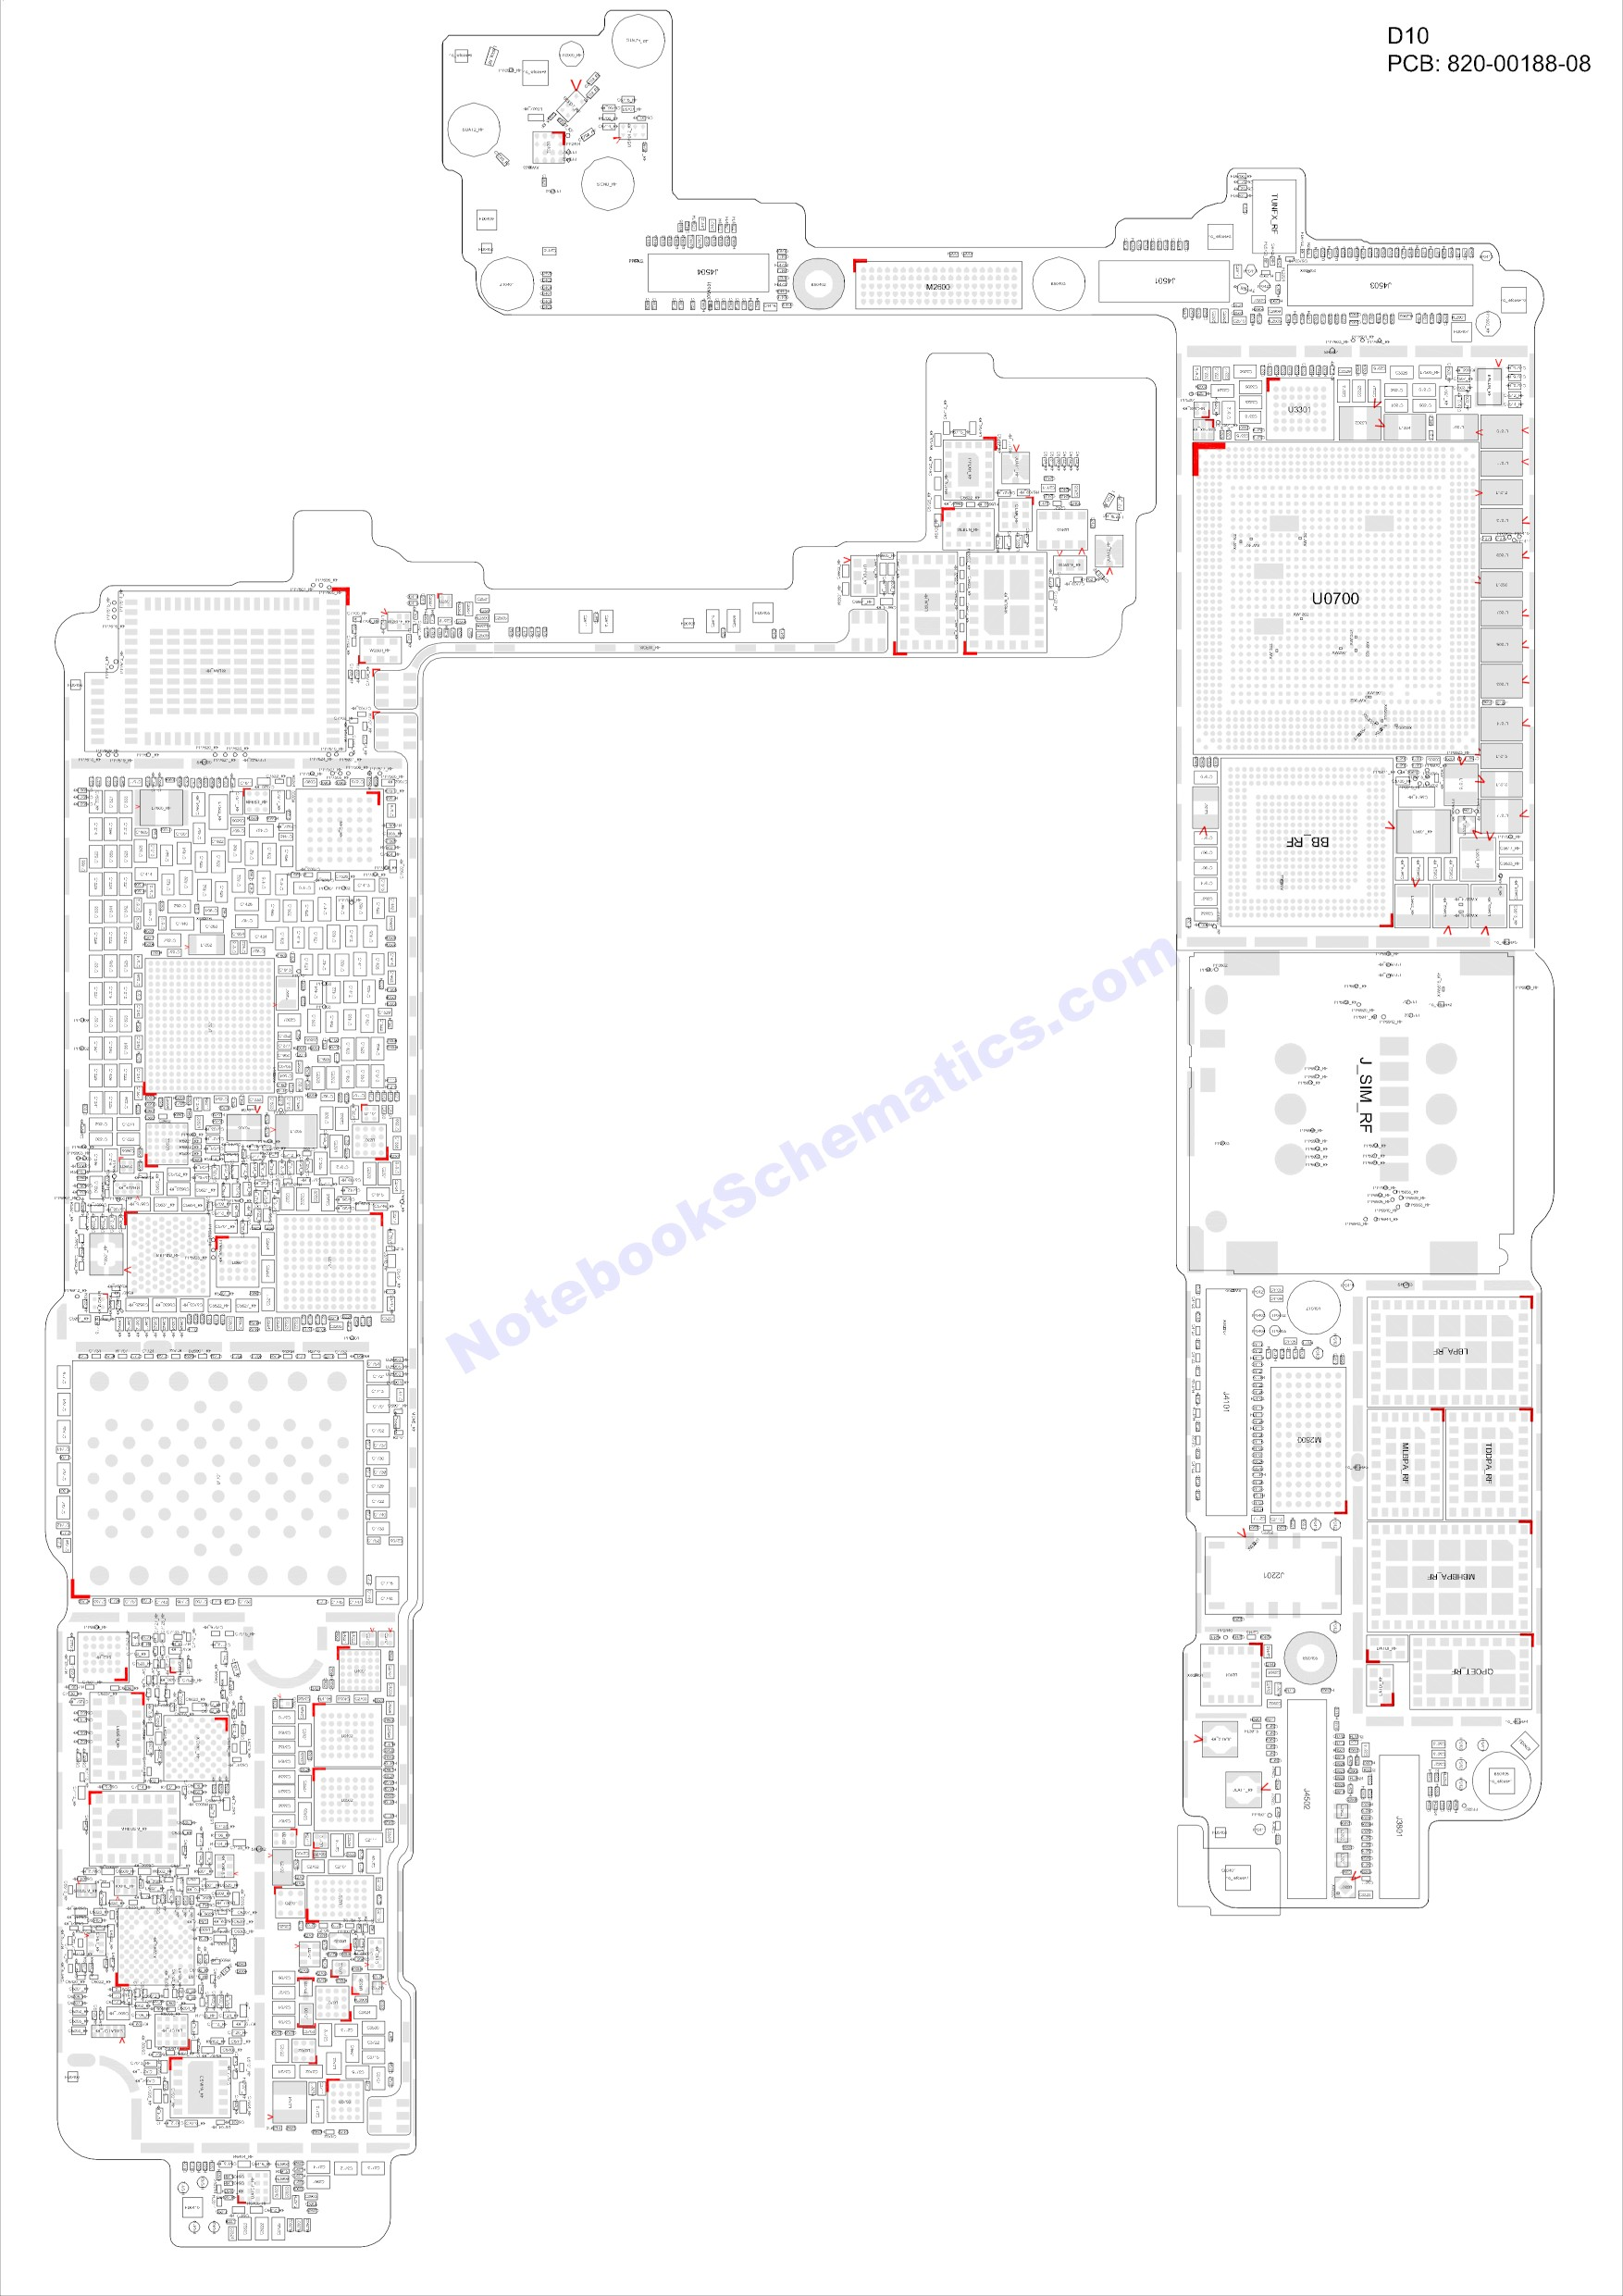 iPhone 7 820-00188 Schematic & PCB Layout